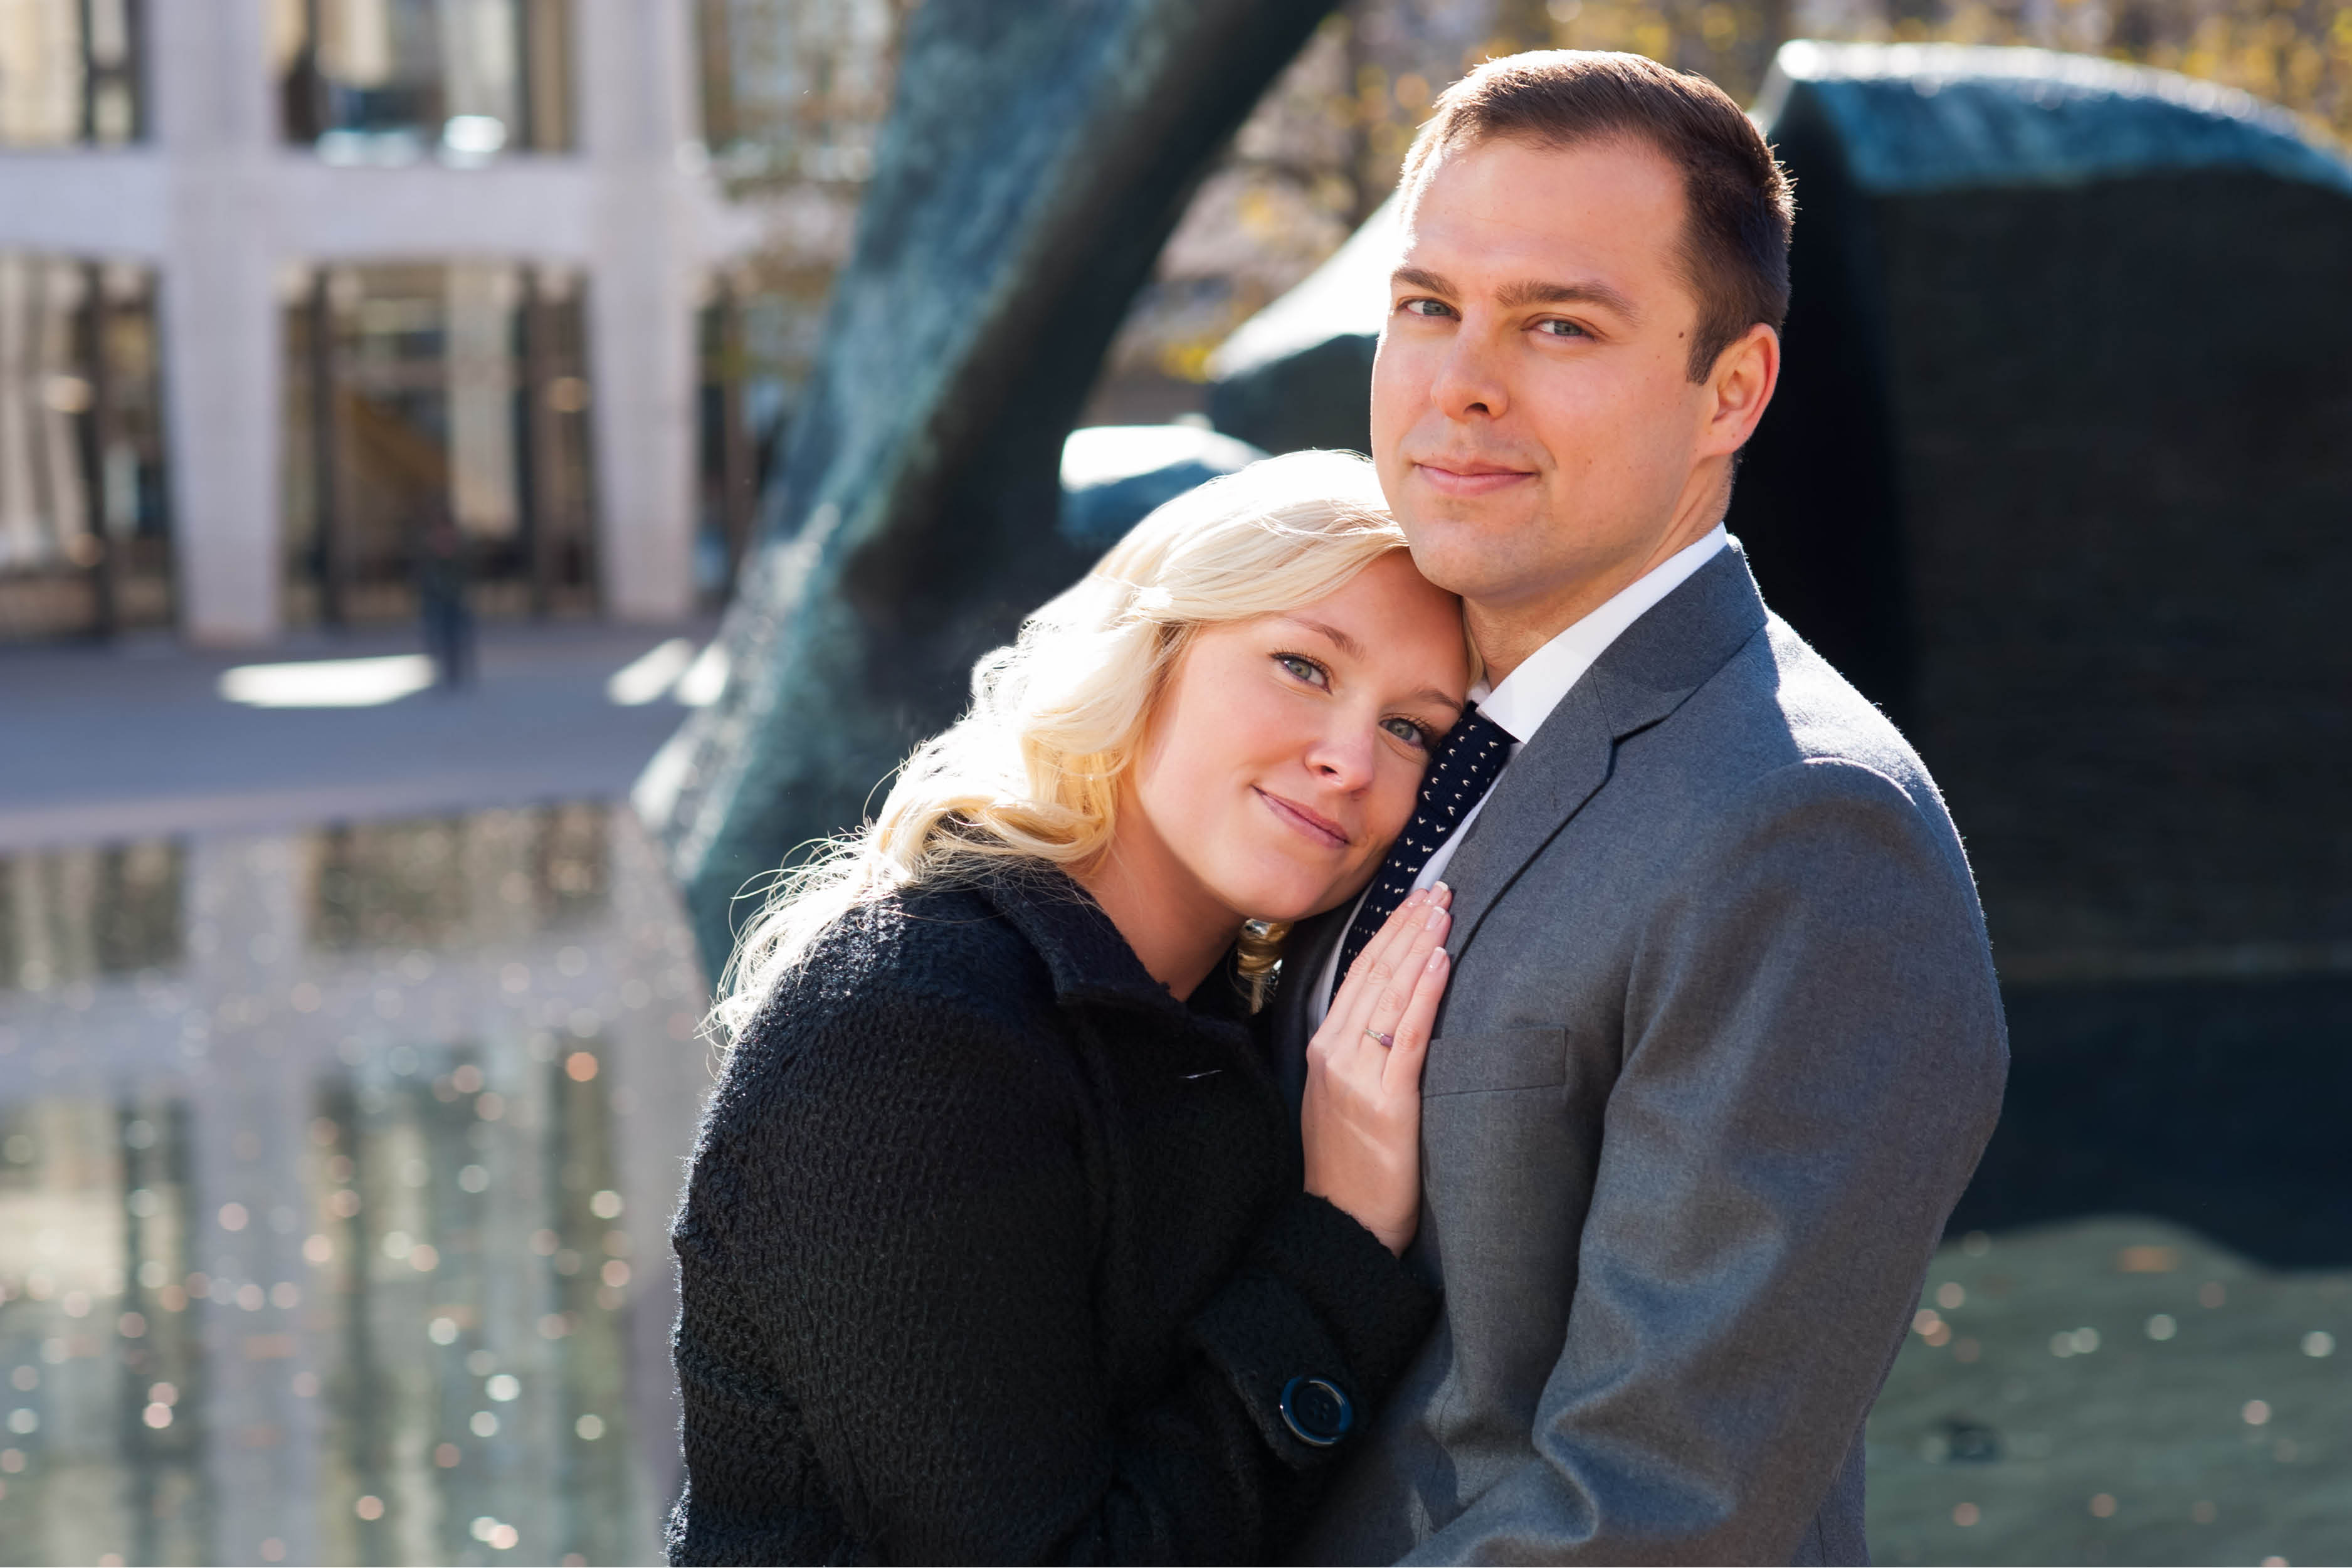 Emma_cleary_photography Lincoln center engagement shoot17